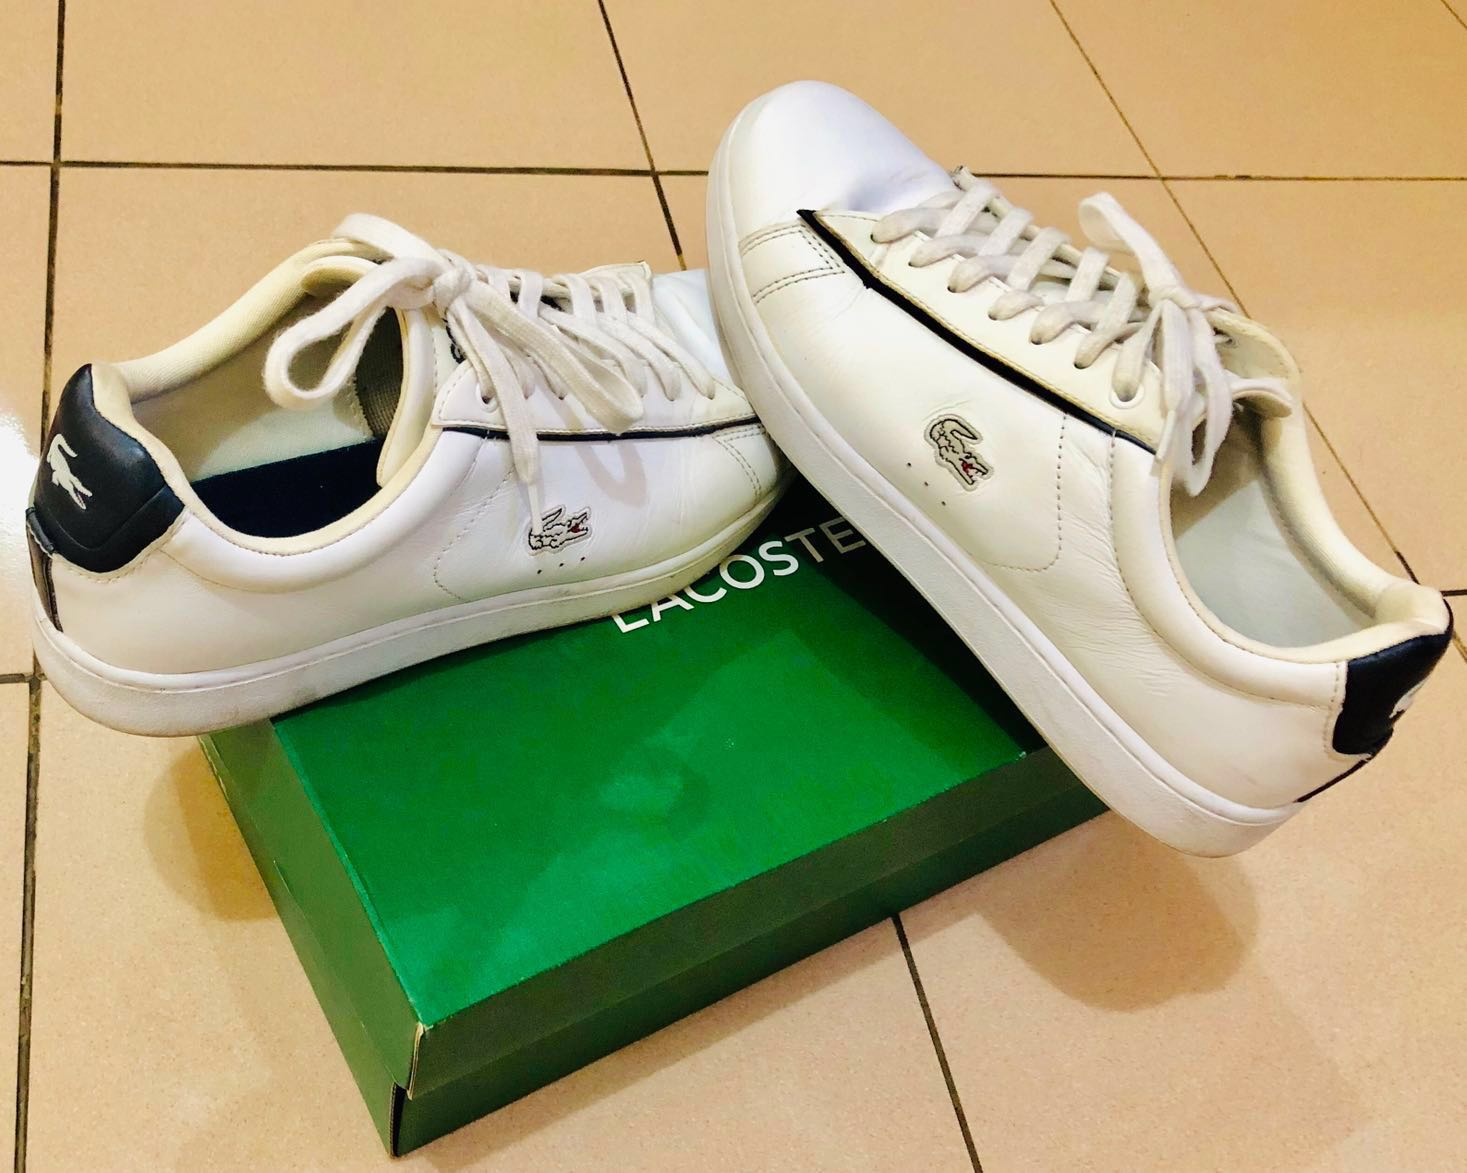 84f9f662b26 Lacoste Shoes Original, Men's Fashion, Men's Footwear, Sneakers on Carousell